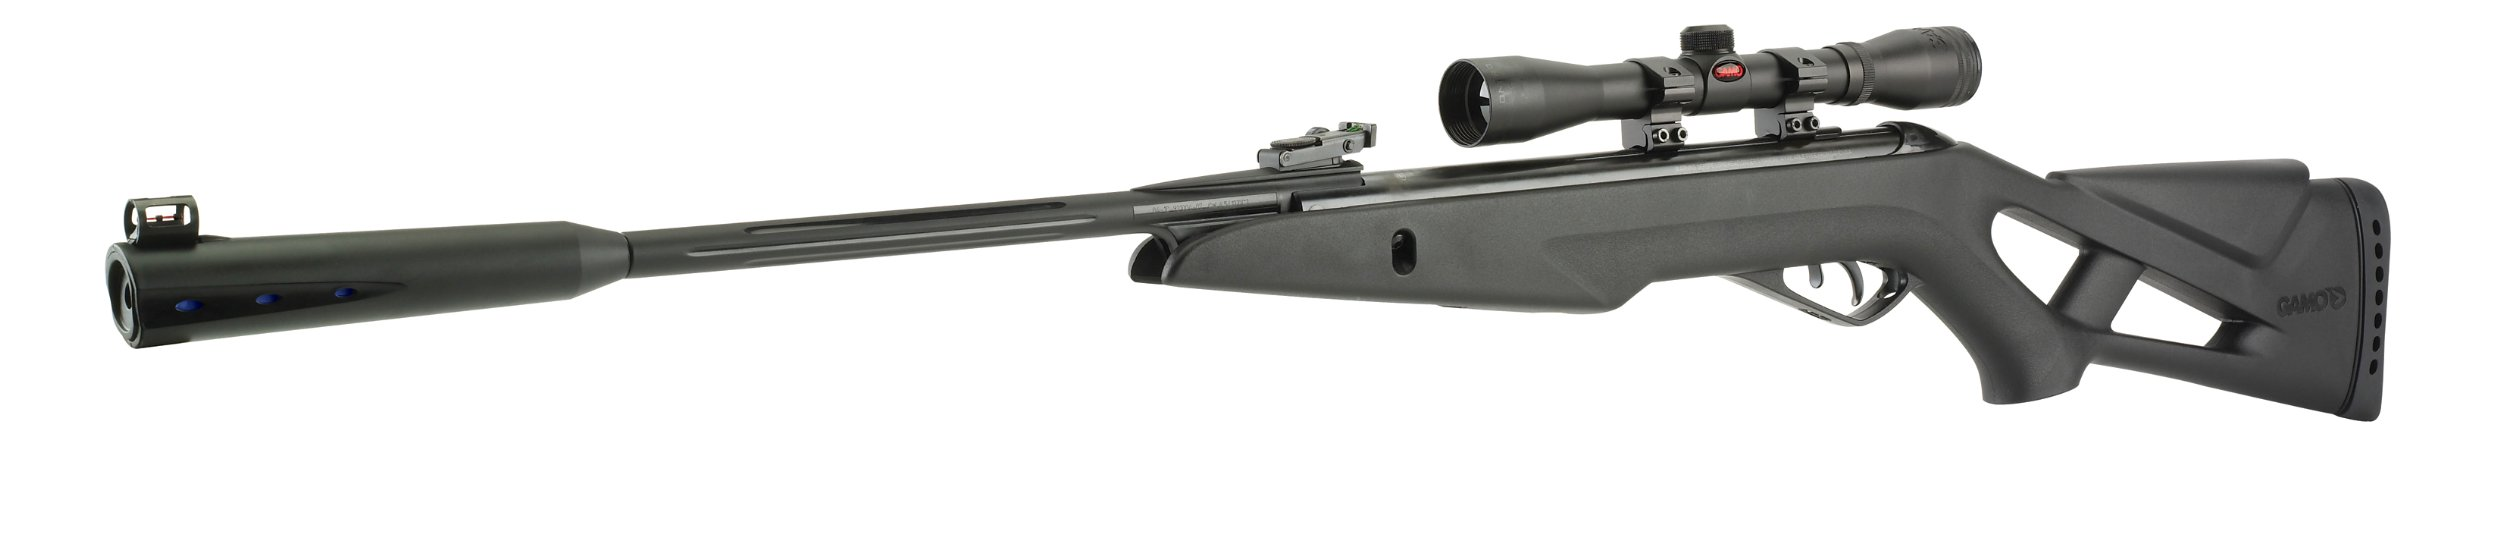 Gamo Silent Cat Air Rifle Review